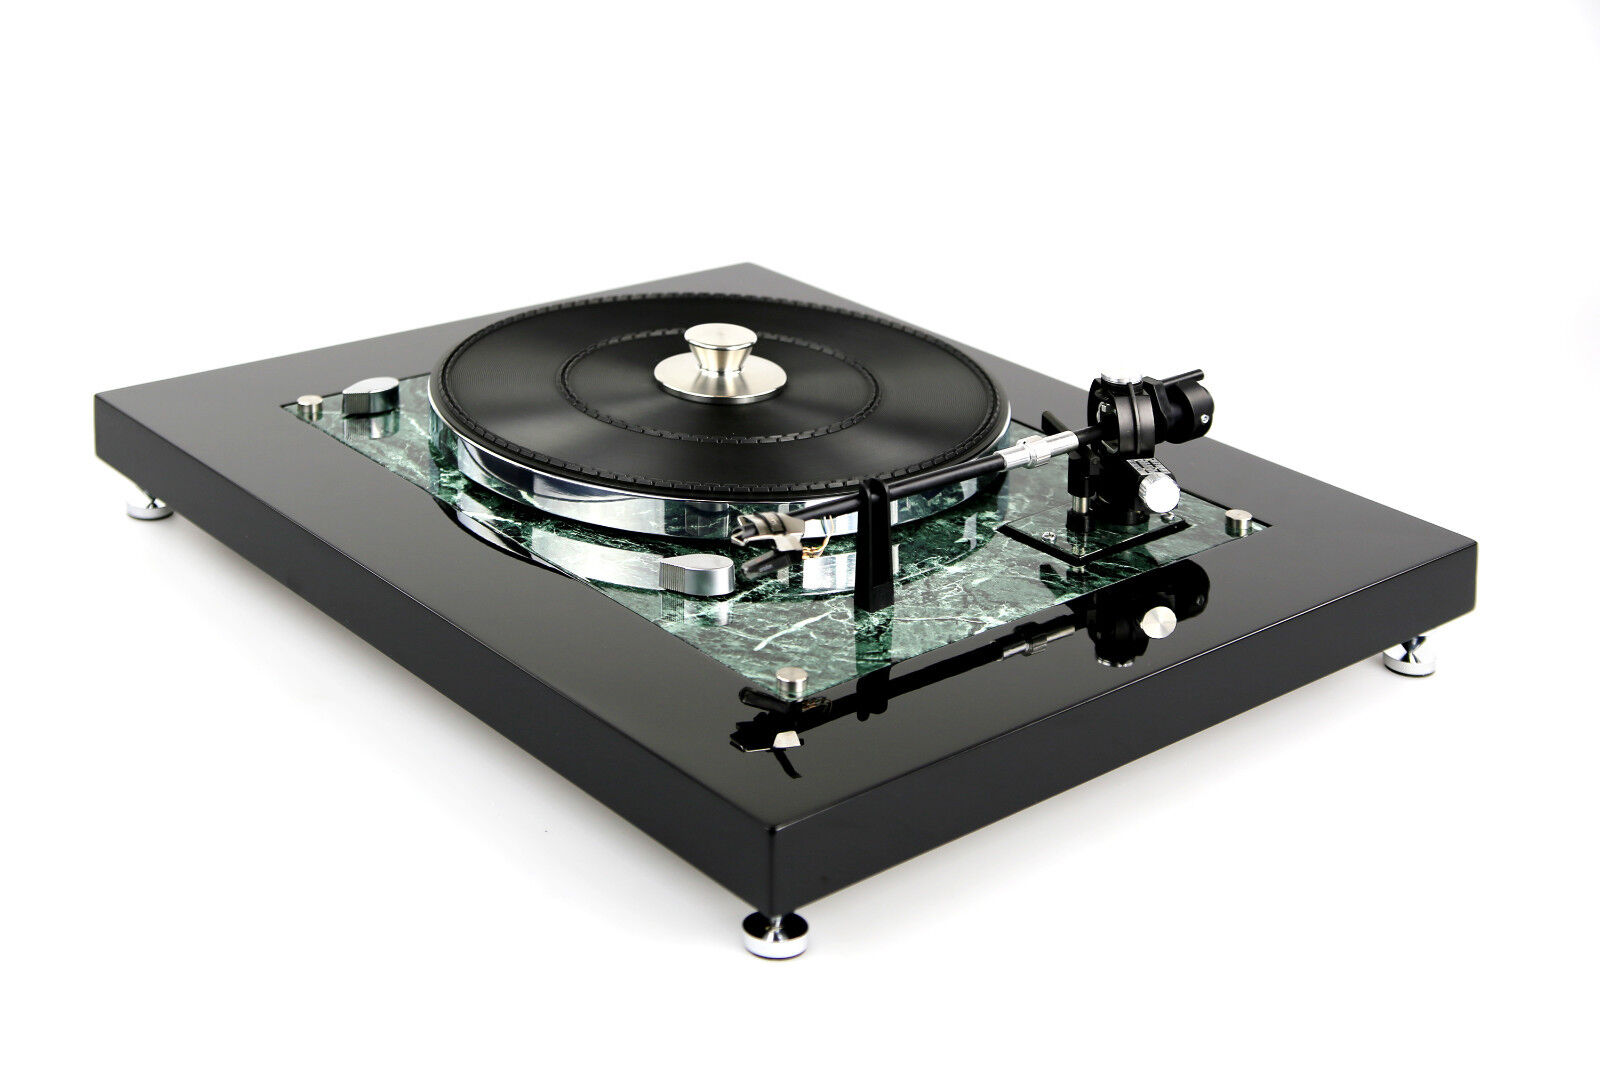 Image 1 - Restored Thorens TD 145 MKII Turntable Turntable in Marble Effect